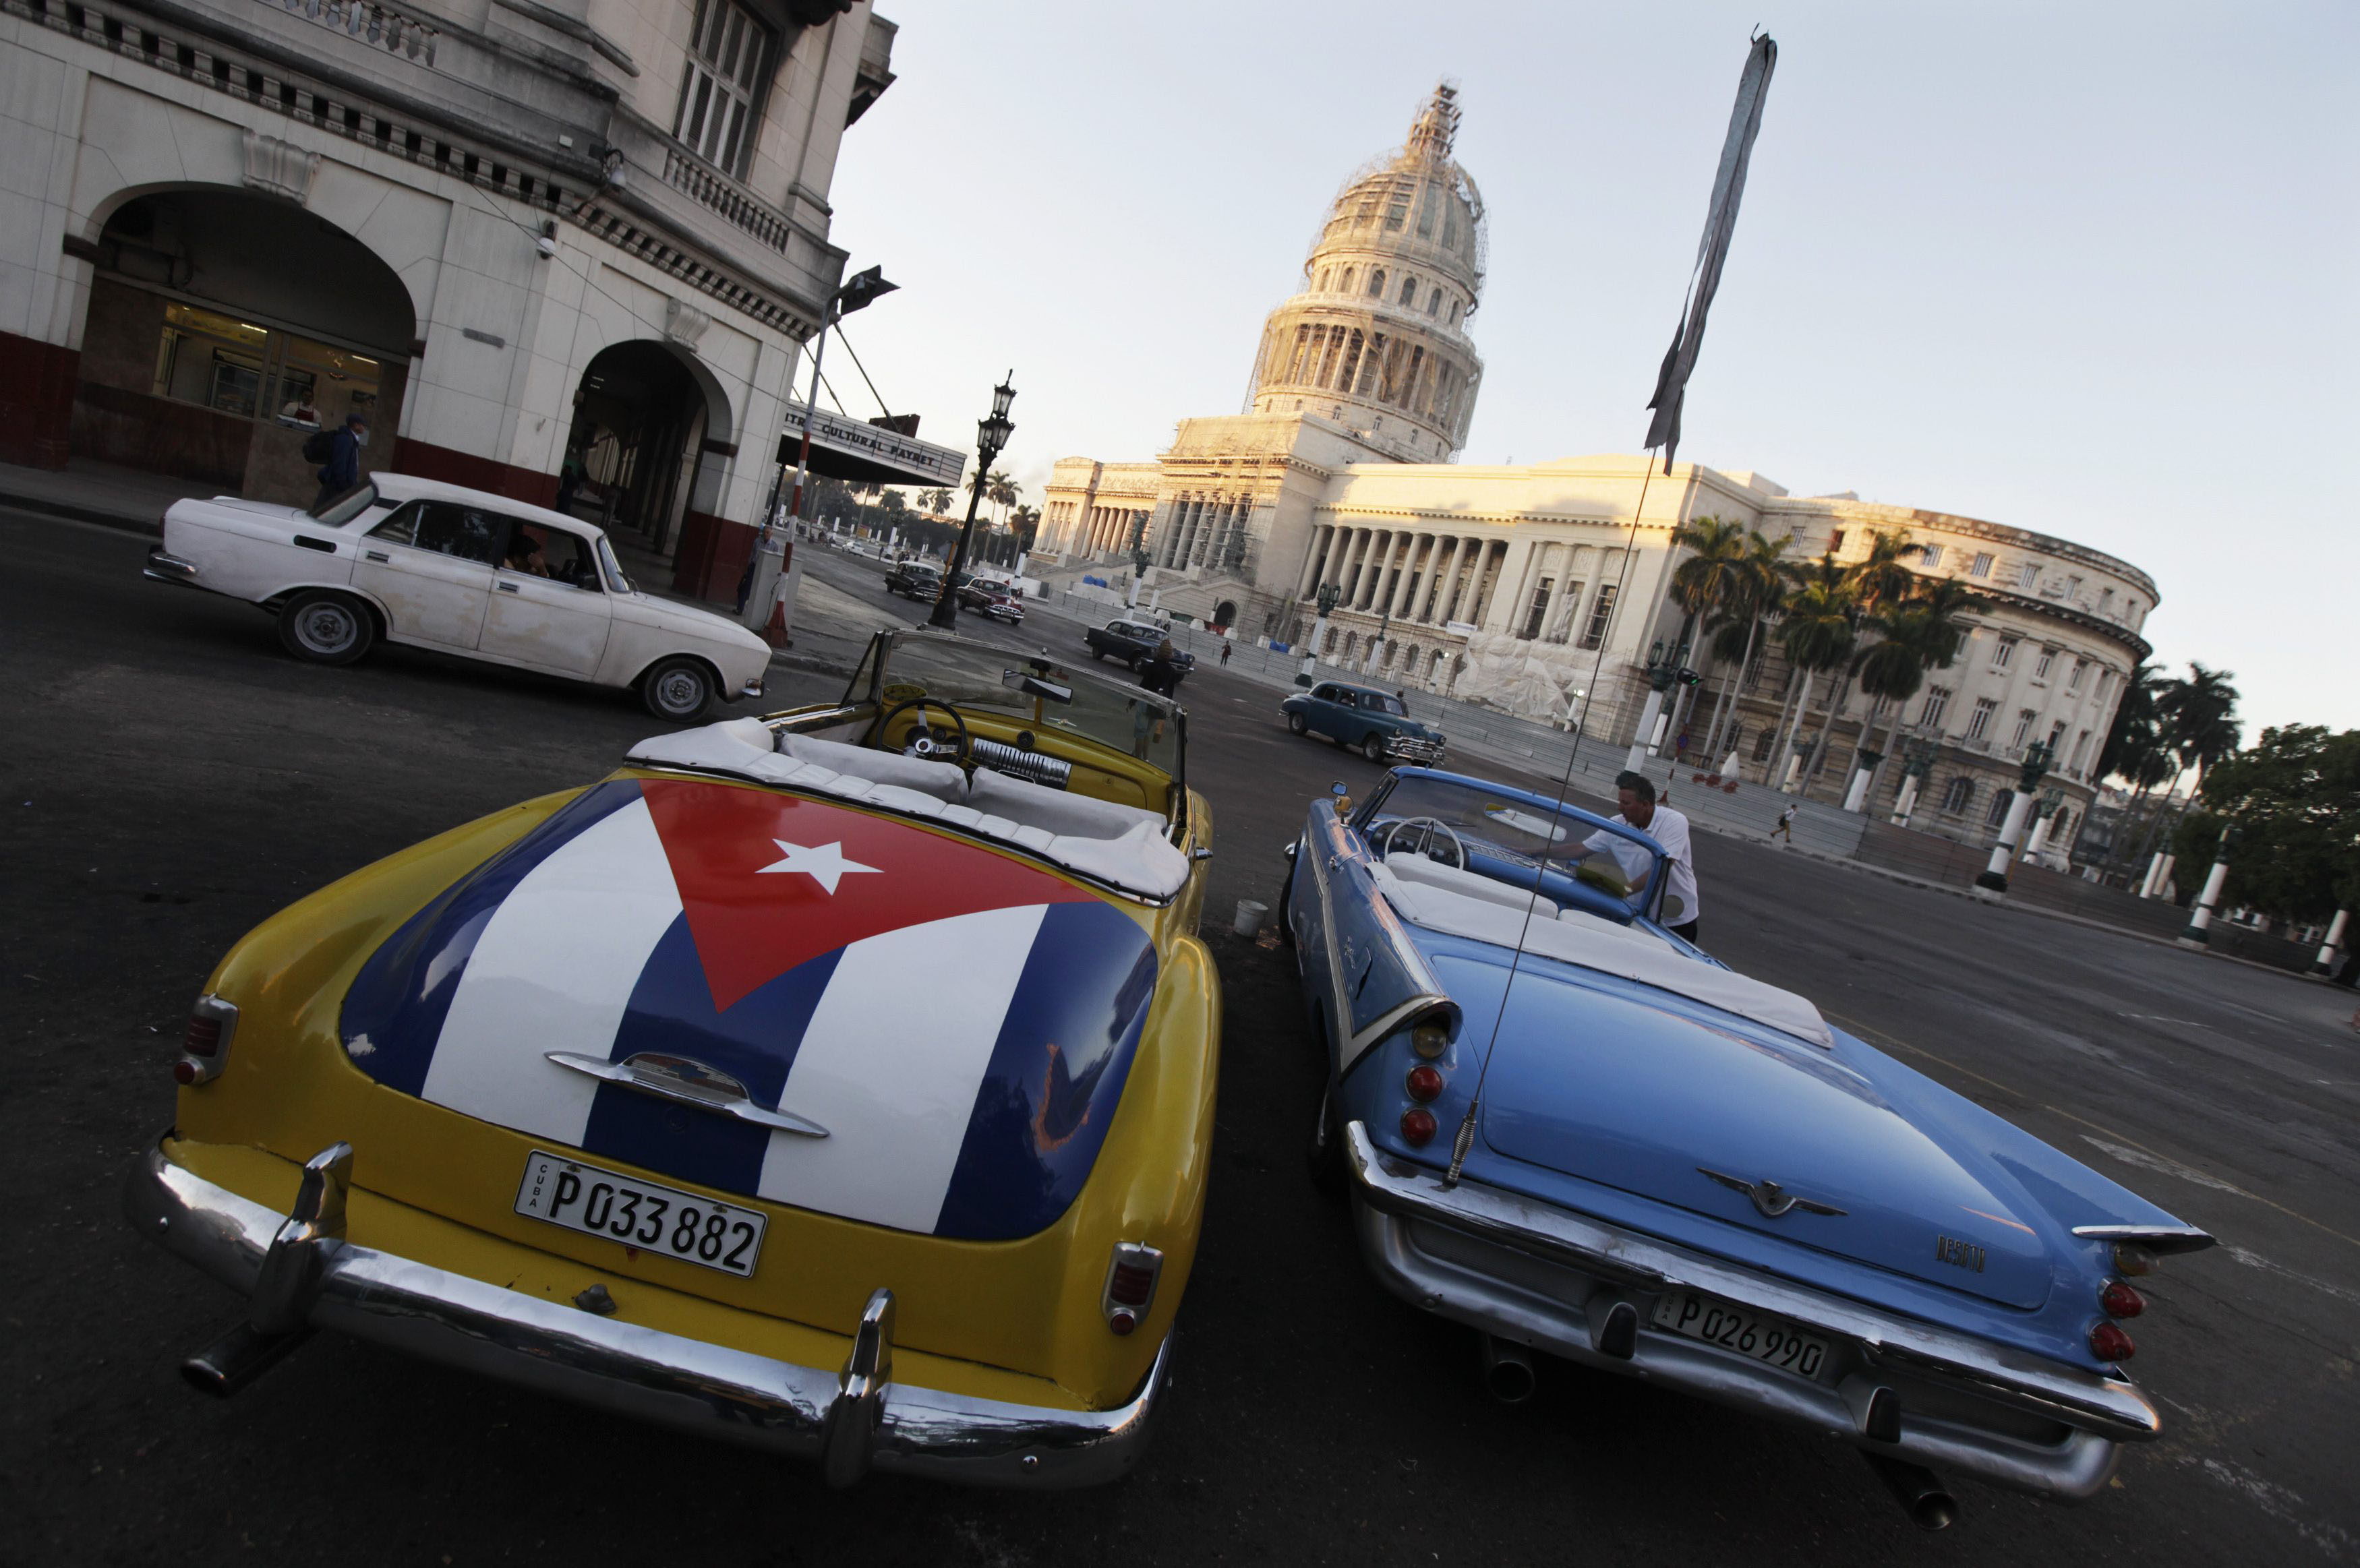 A vintage American car painted with a Cuban flag is parked near the Cuban Capitol in Havana on Dec. 18.